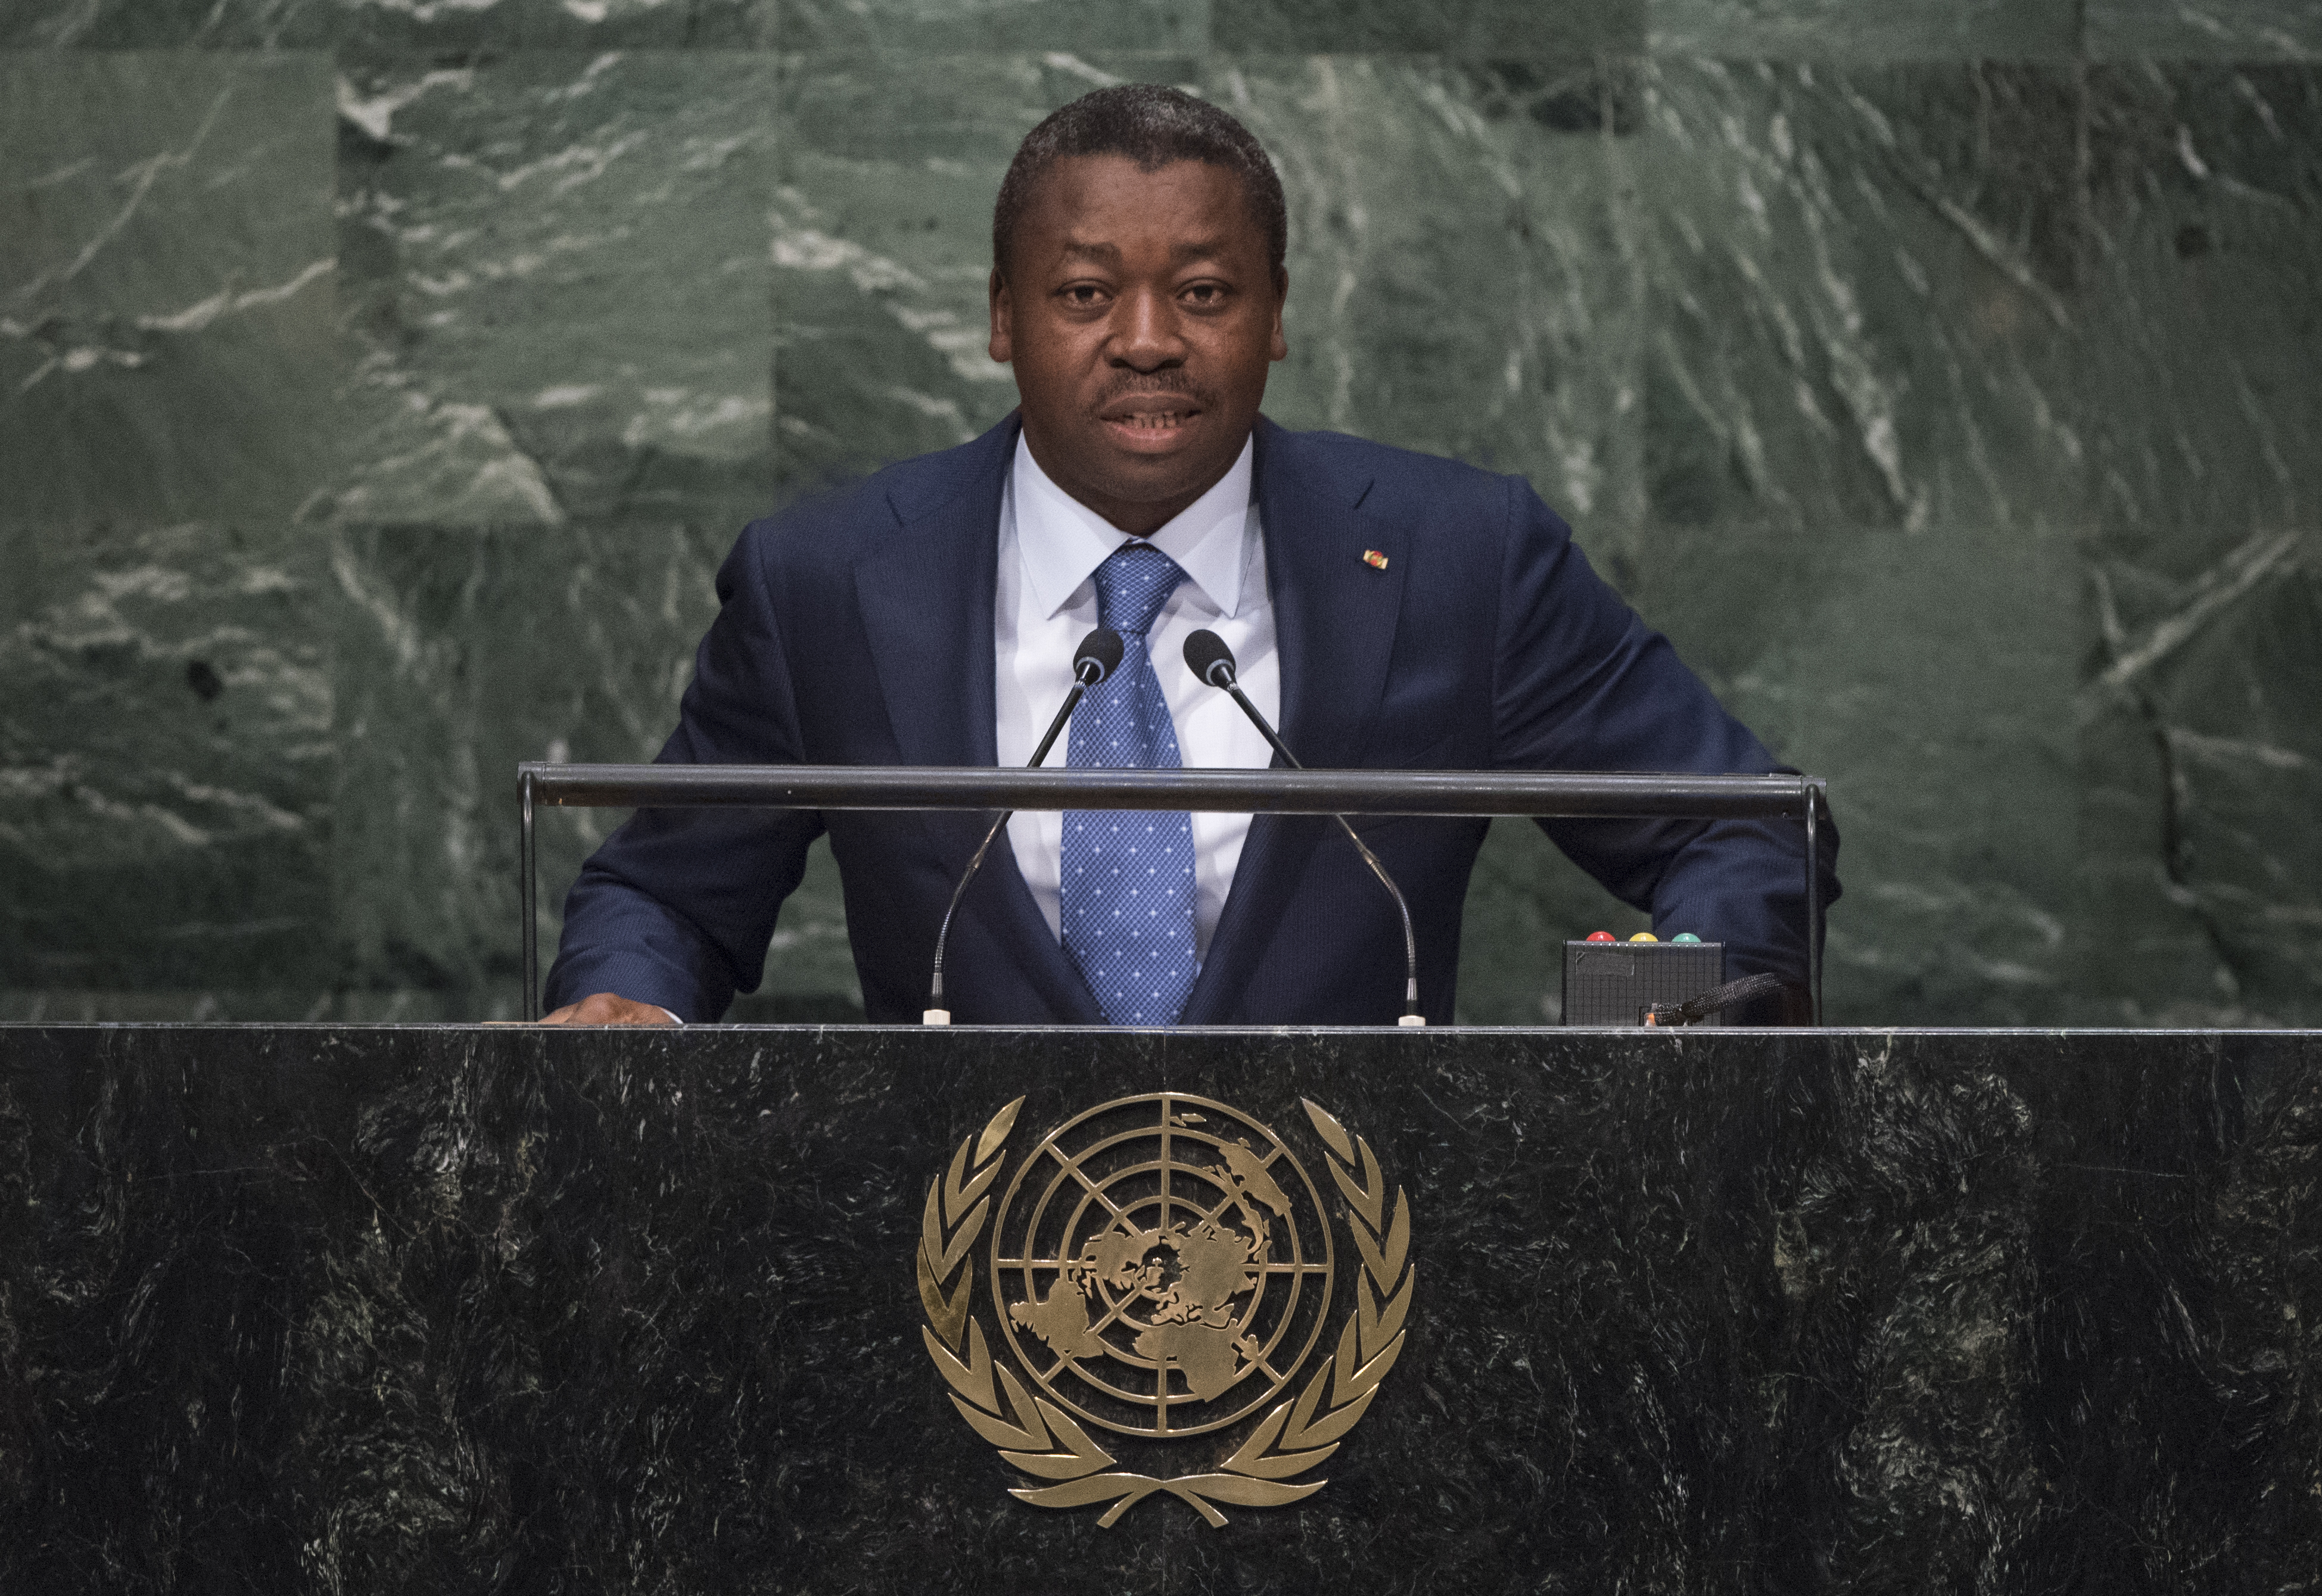 Faure Essozimna Gnassingbé, President of Togo, addresses the general debate of the General Assembly's seventieth session.